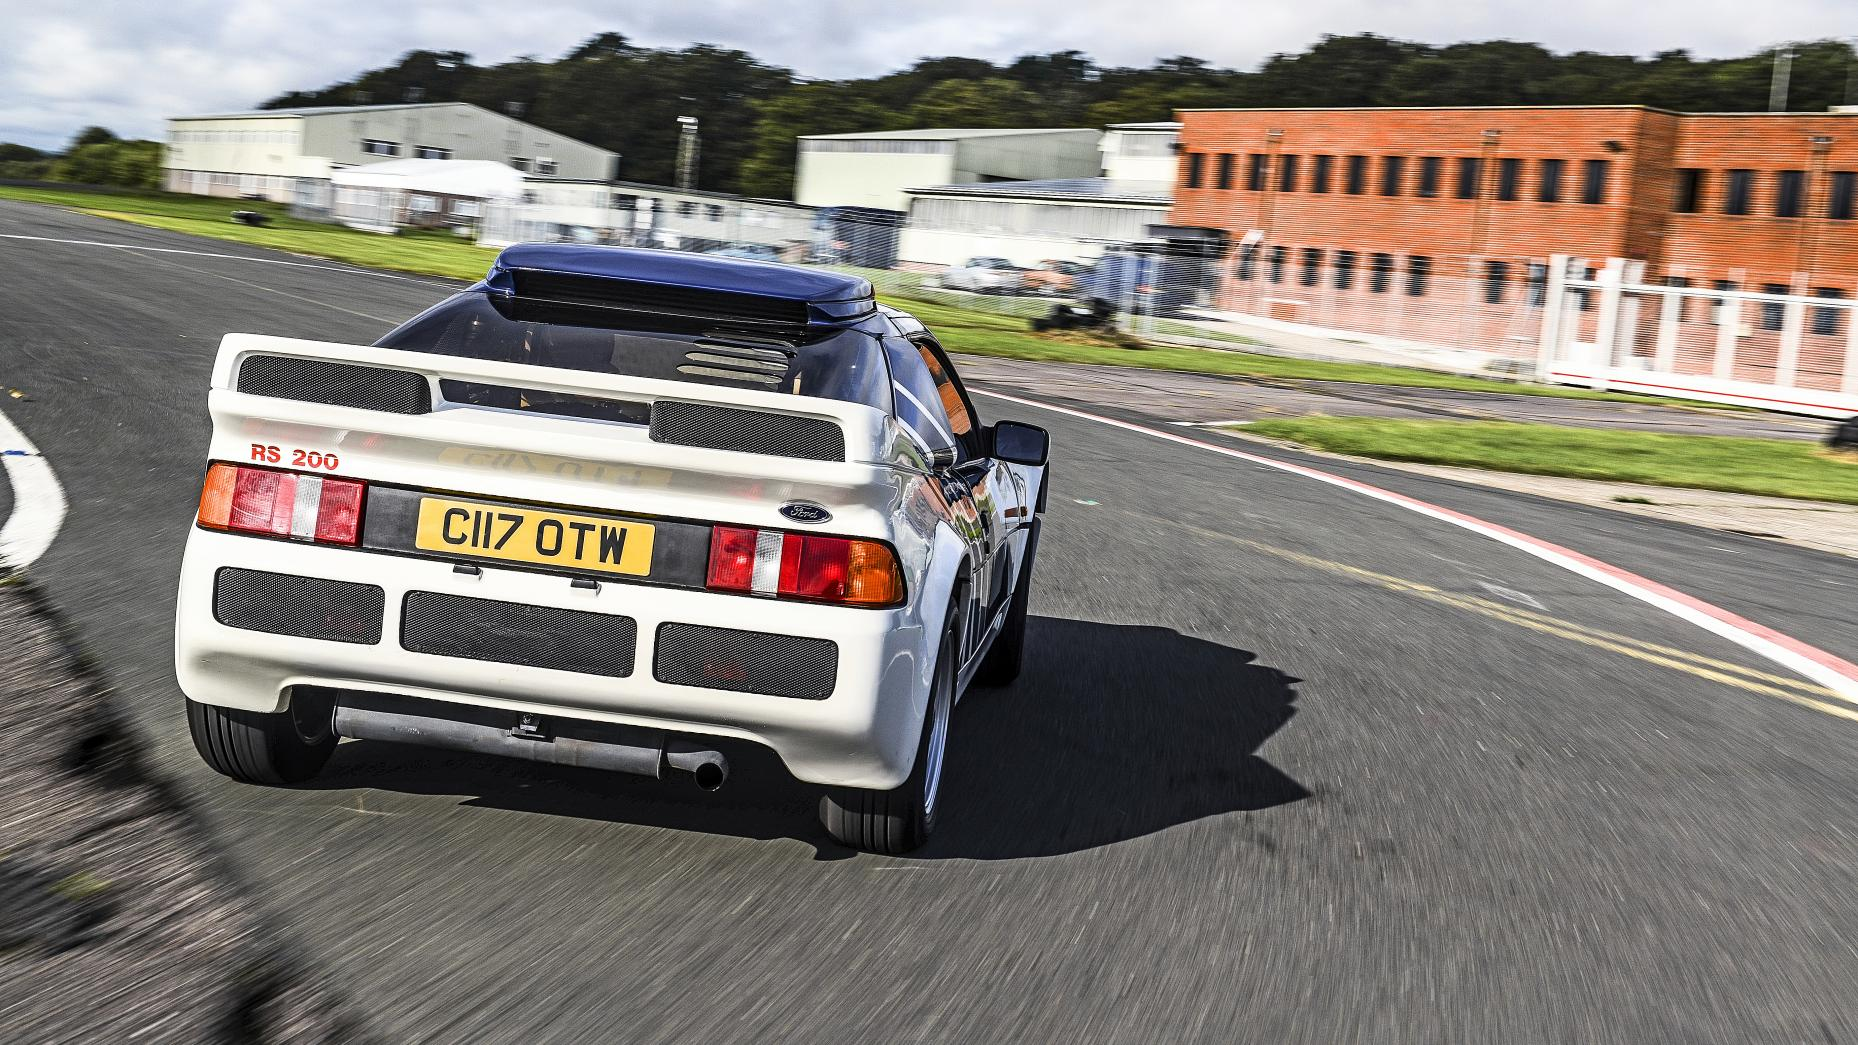 4. Ford RS200